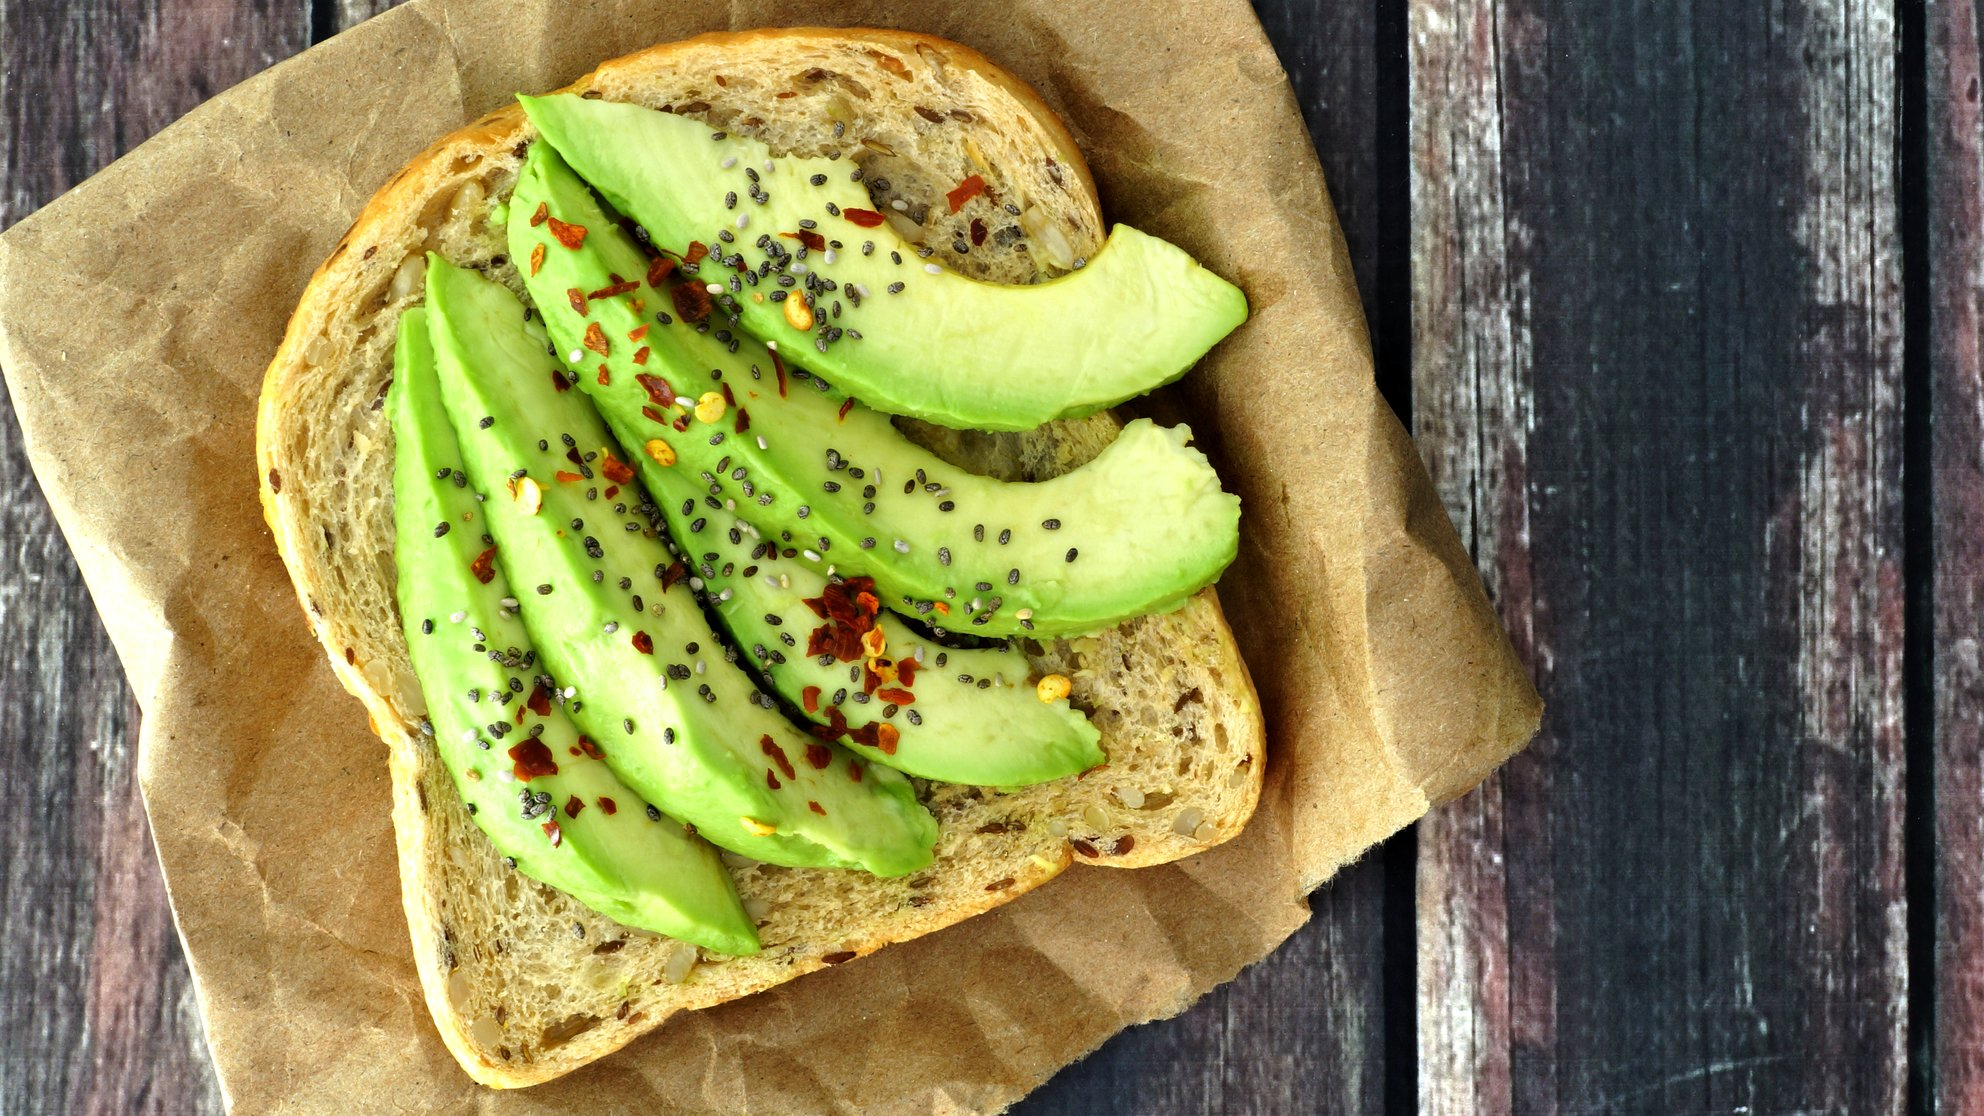 Completely new Why Do Some Avocados Have Strings? - Health RF39